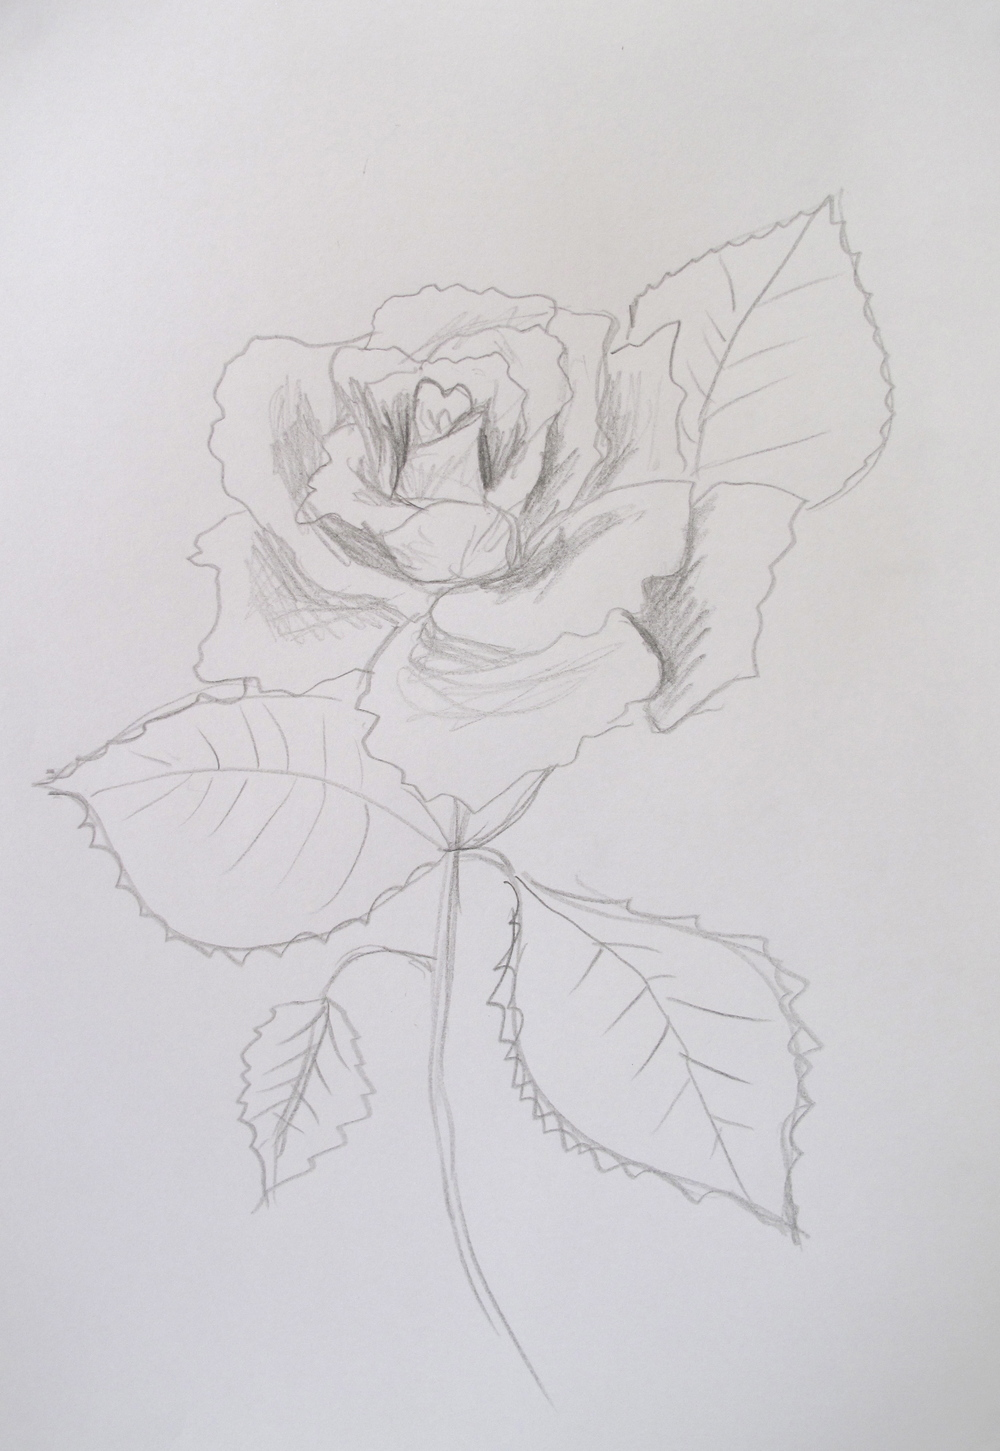 simple sketch of a rose